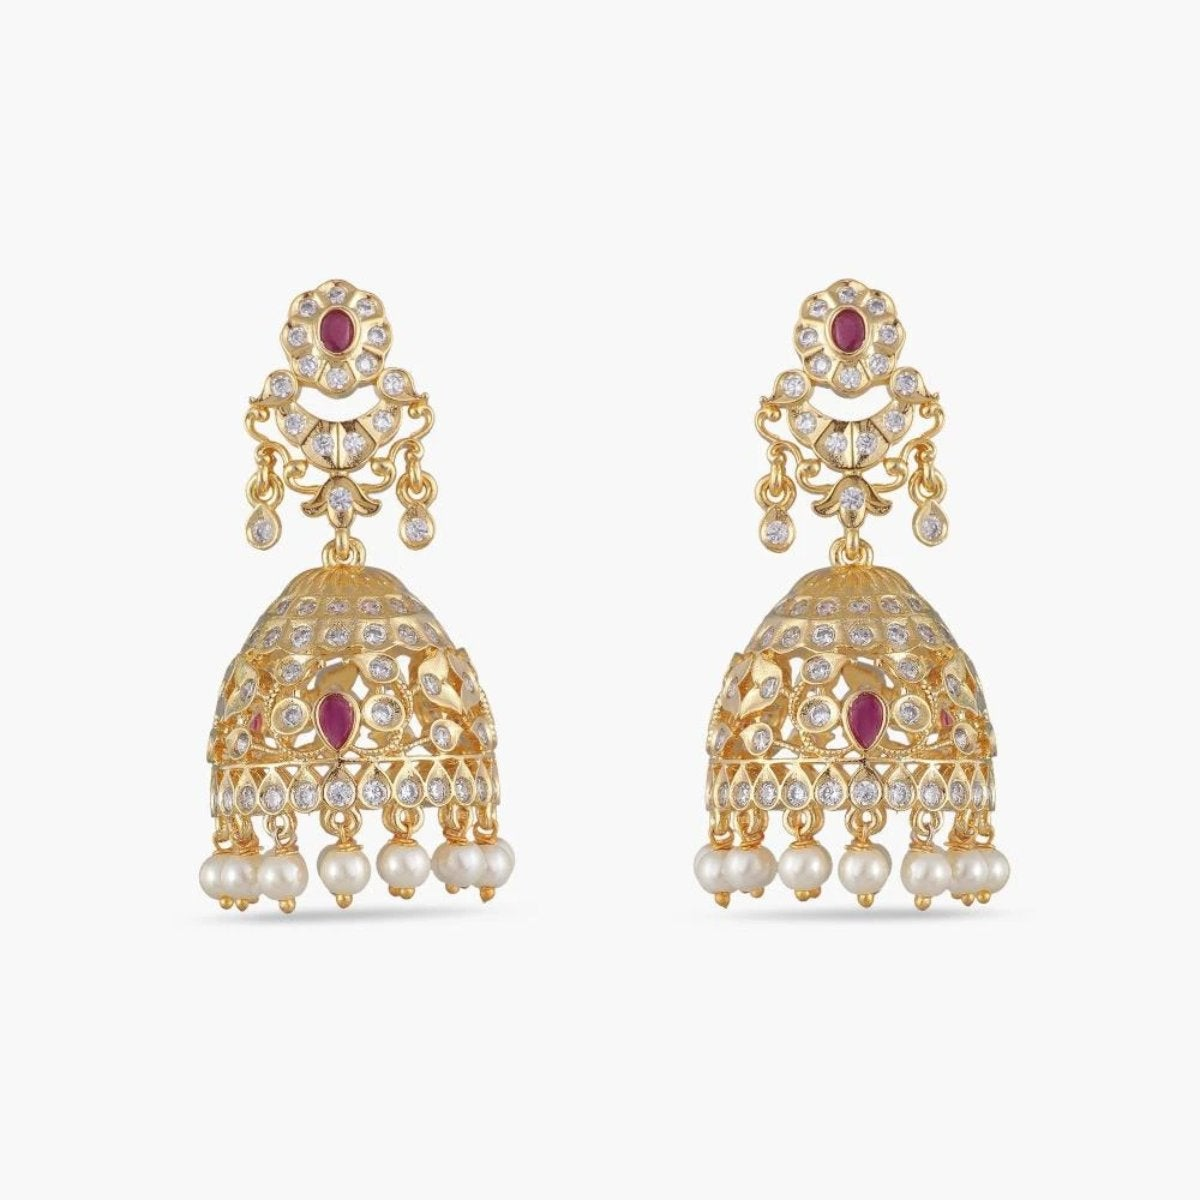 Sanvi Nakshatra CZ Jhumka Earrings